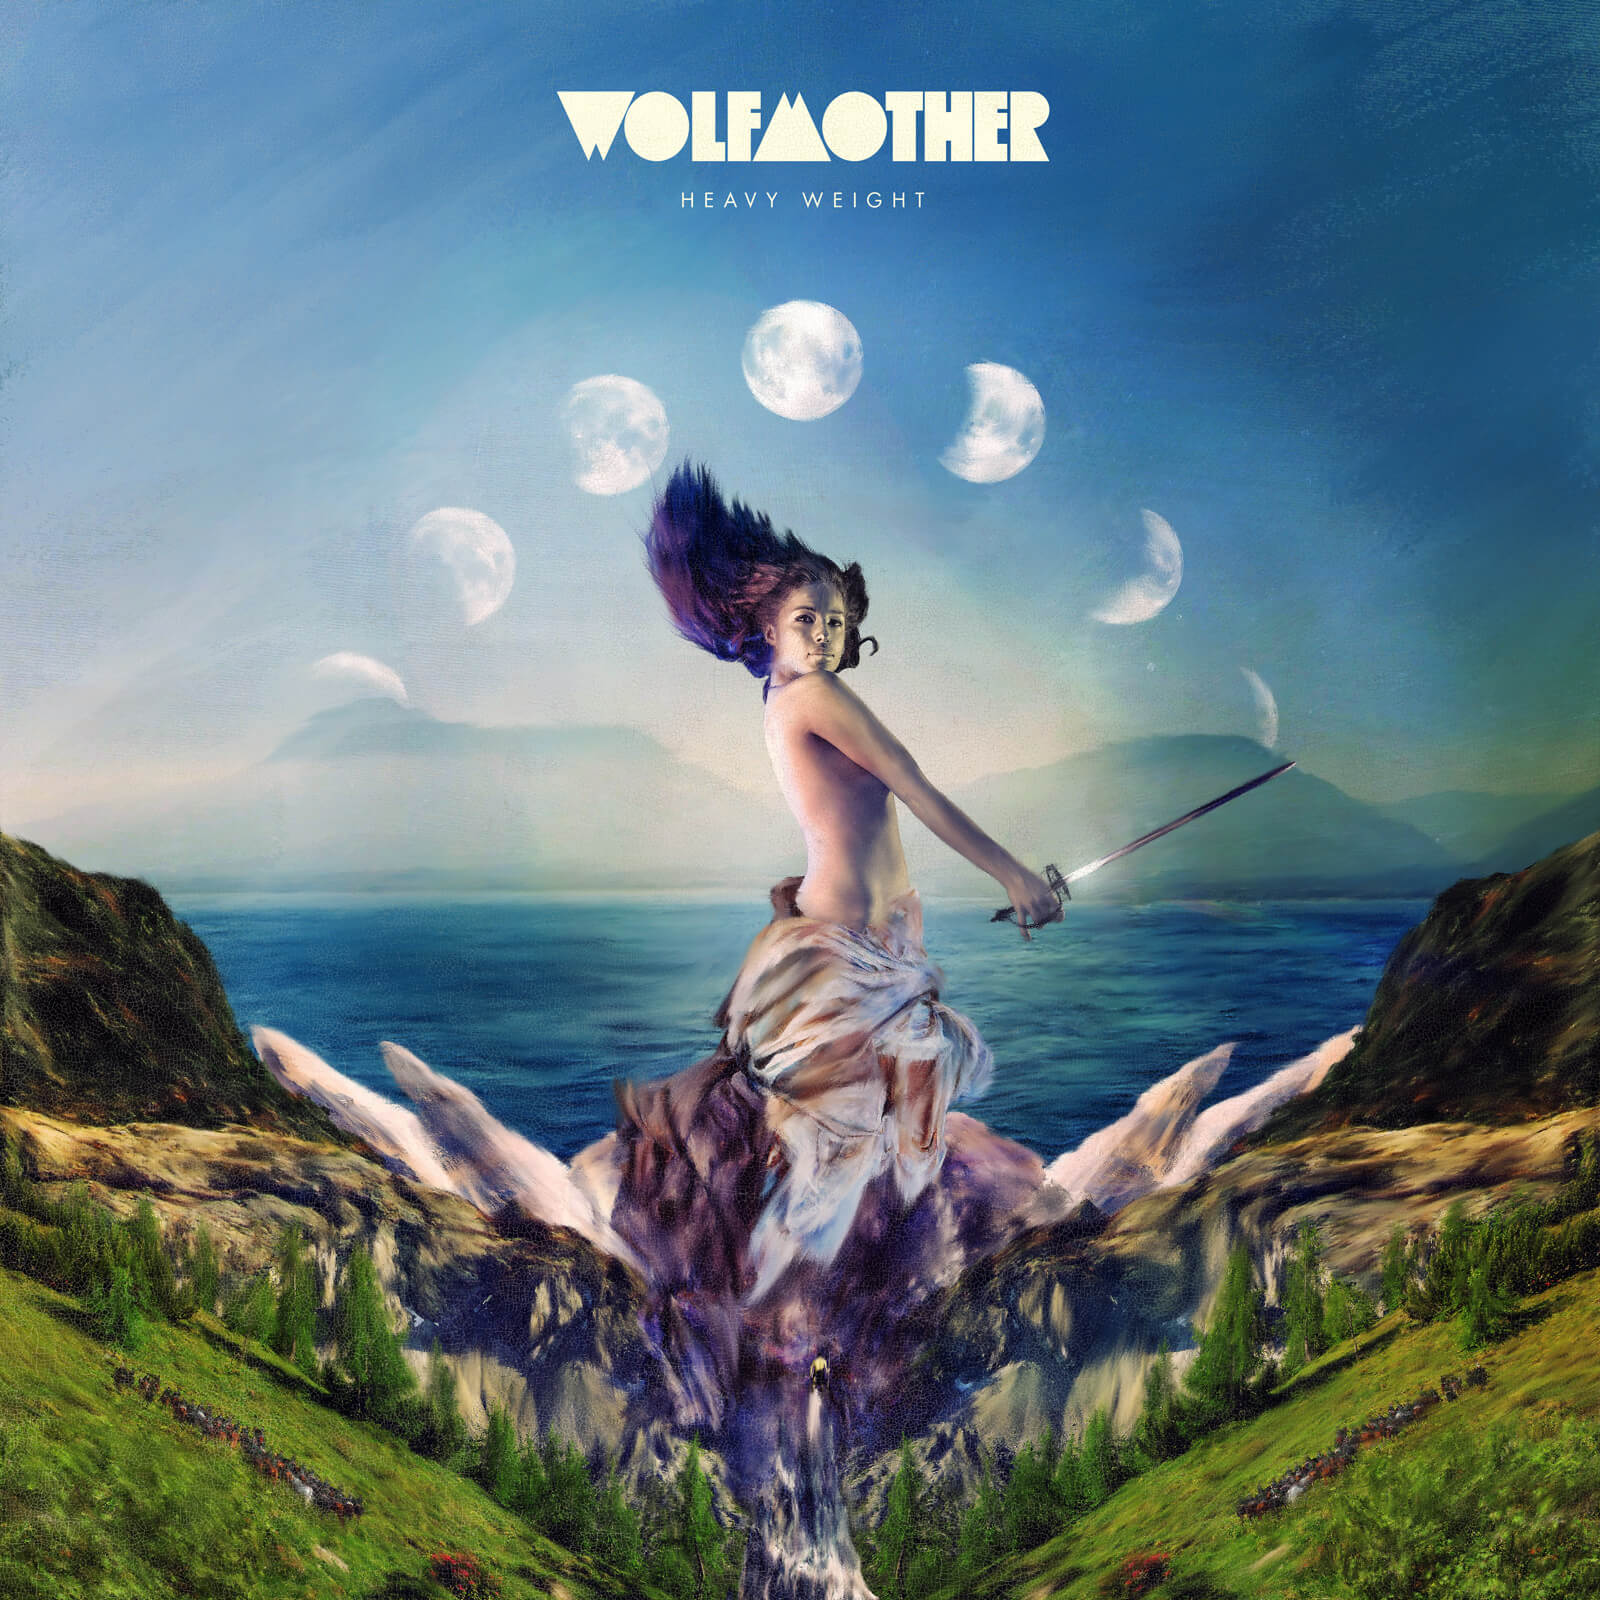 webwolfmother_heavyweight_v11-recovered_oilpaint_o